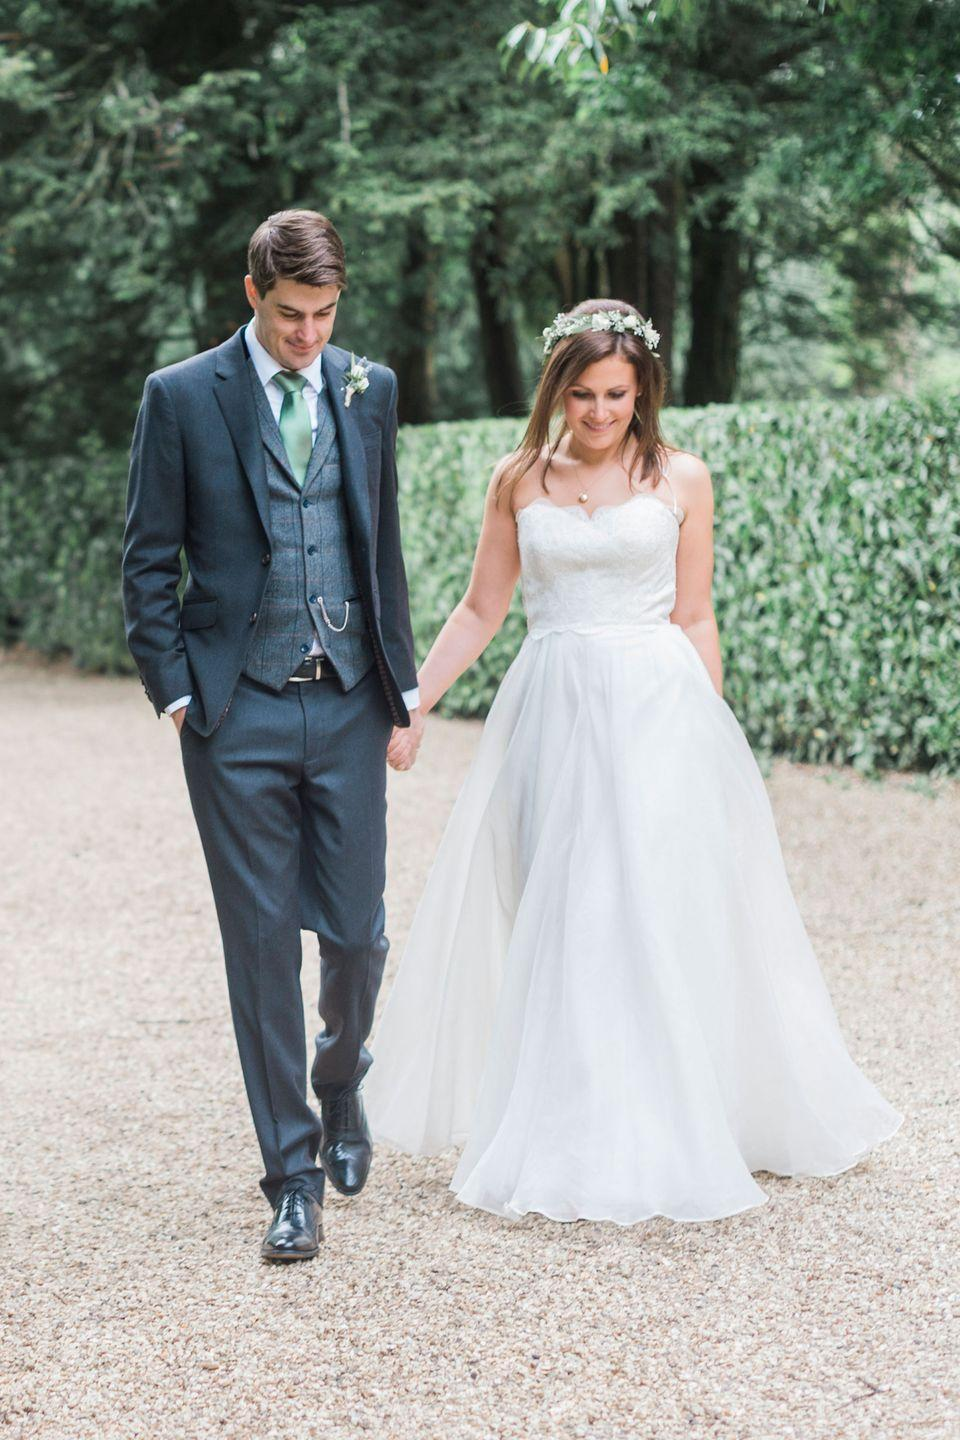 <p><strong>Wedding dress</strong>: Watters Brides</p><p><strong>Shoes</strong>: Anthropologie</p><p><strong>Floral headpiece</strong>: Bright Blooms Floral Boutique</p>